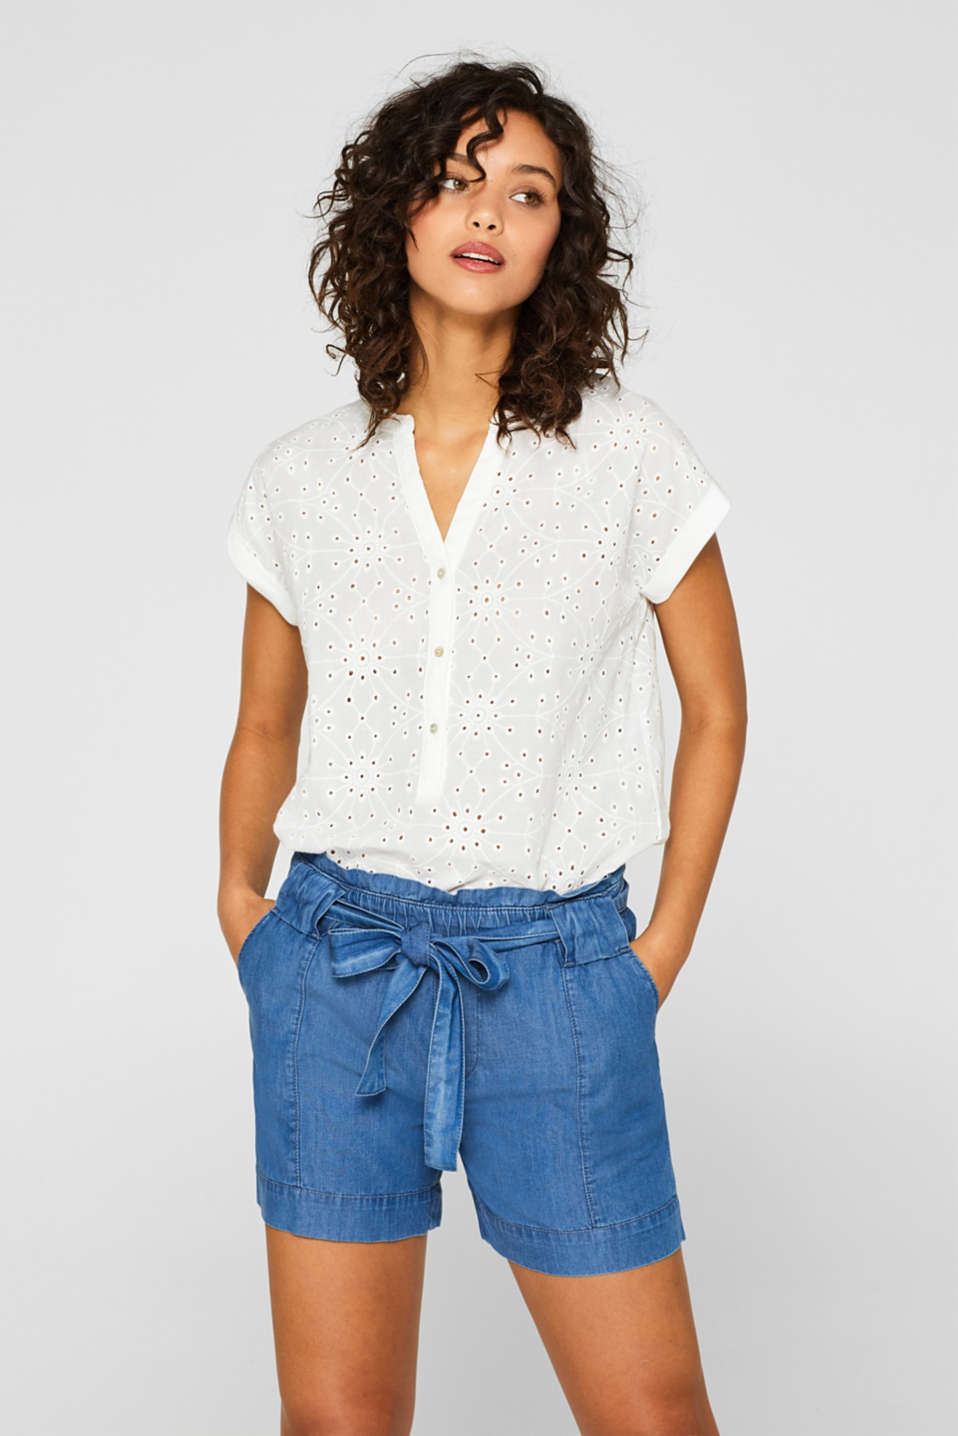 edc - Chemisier à broderie anglaise, 100 % coton